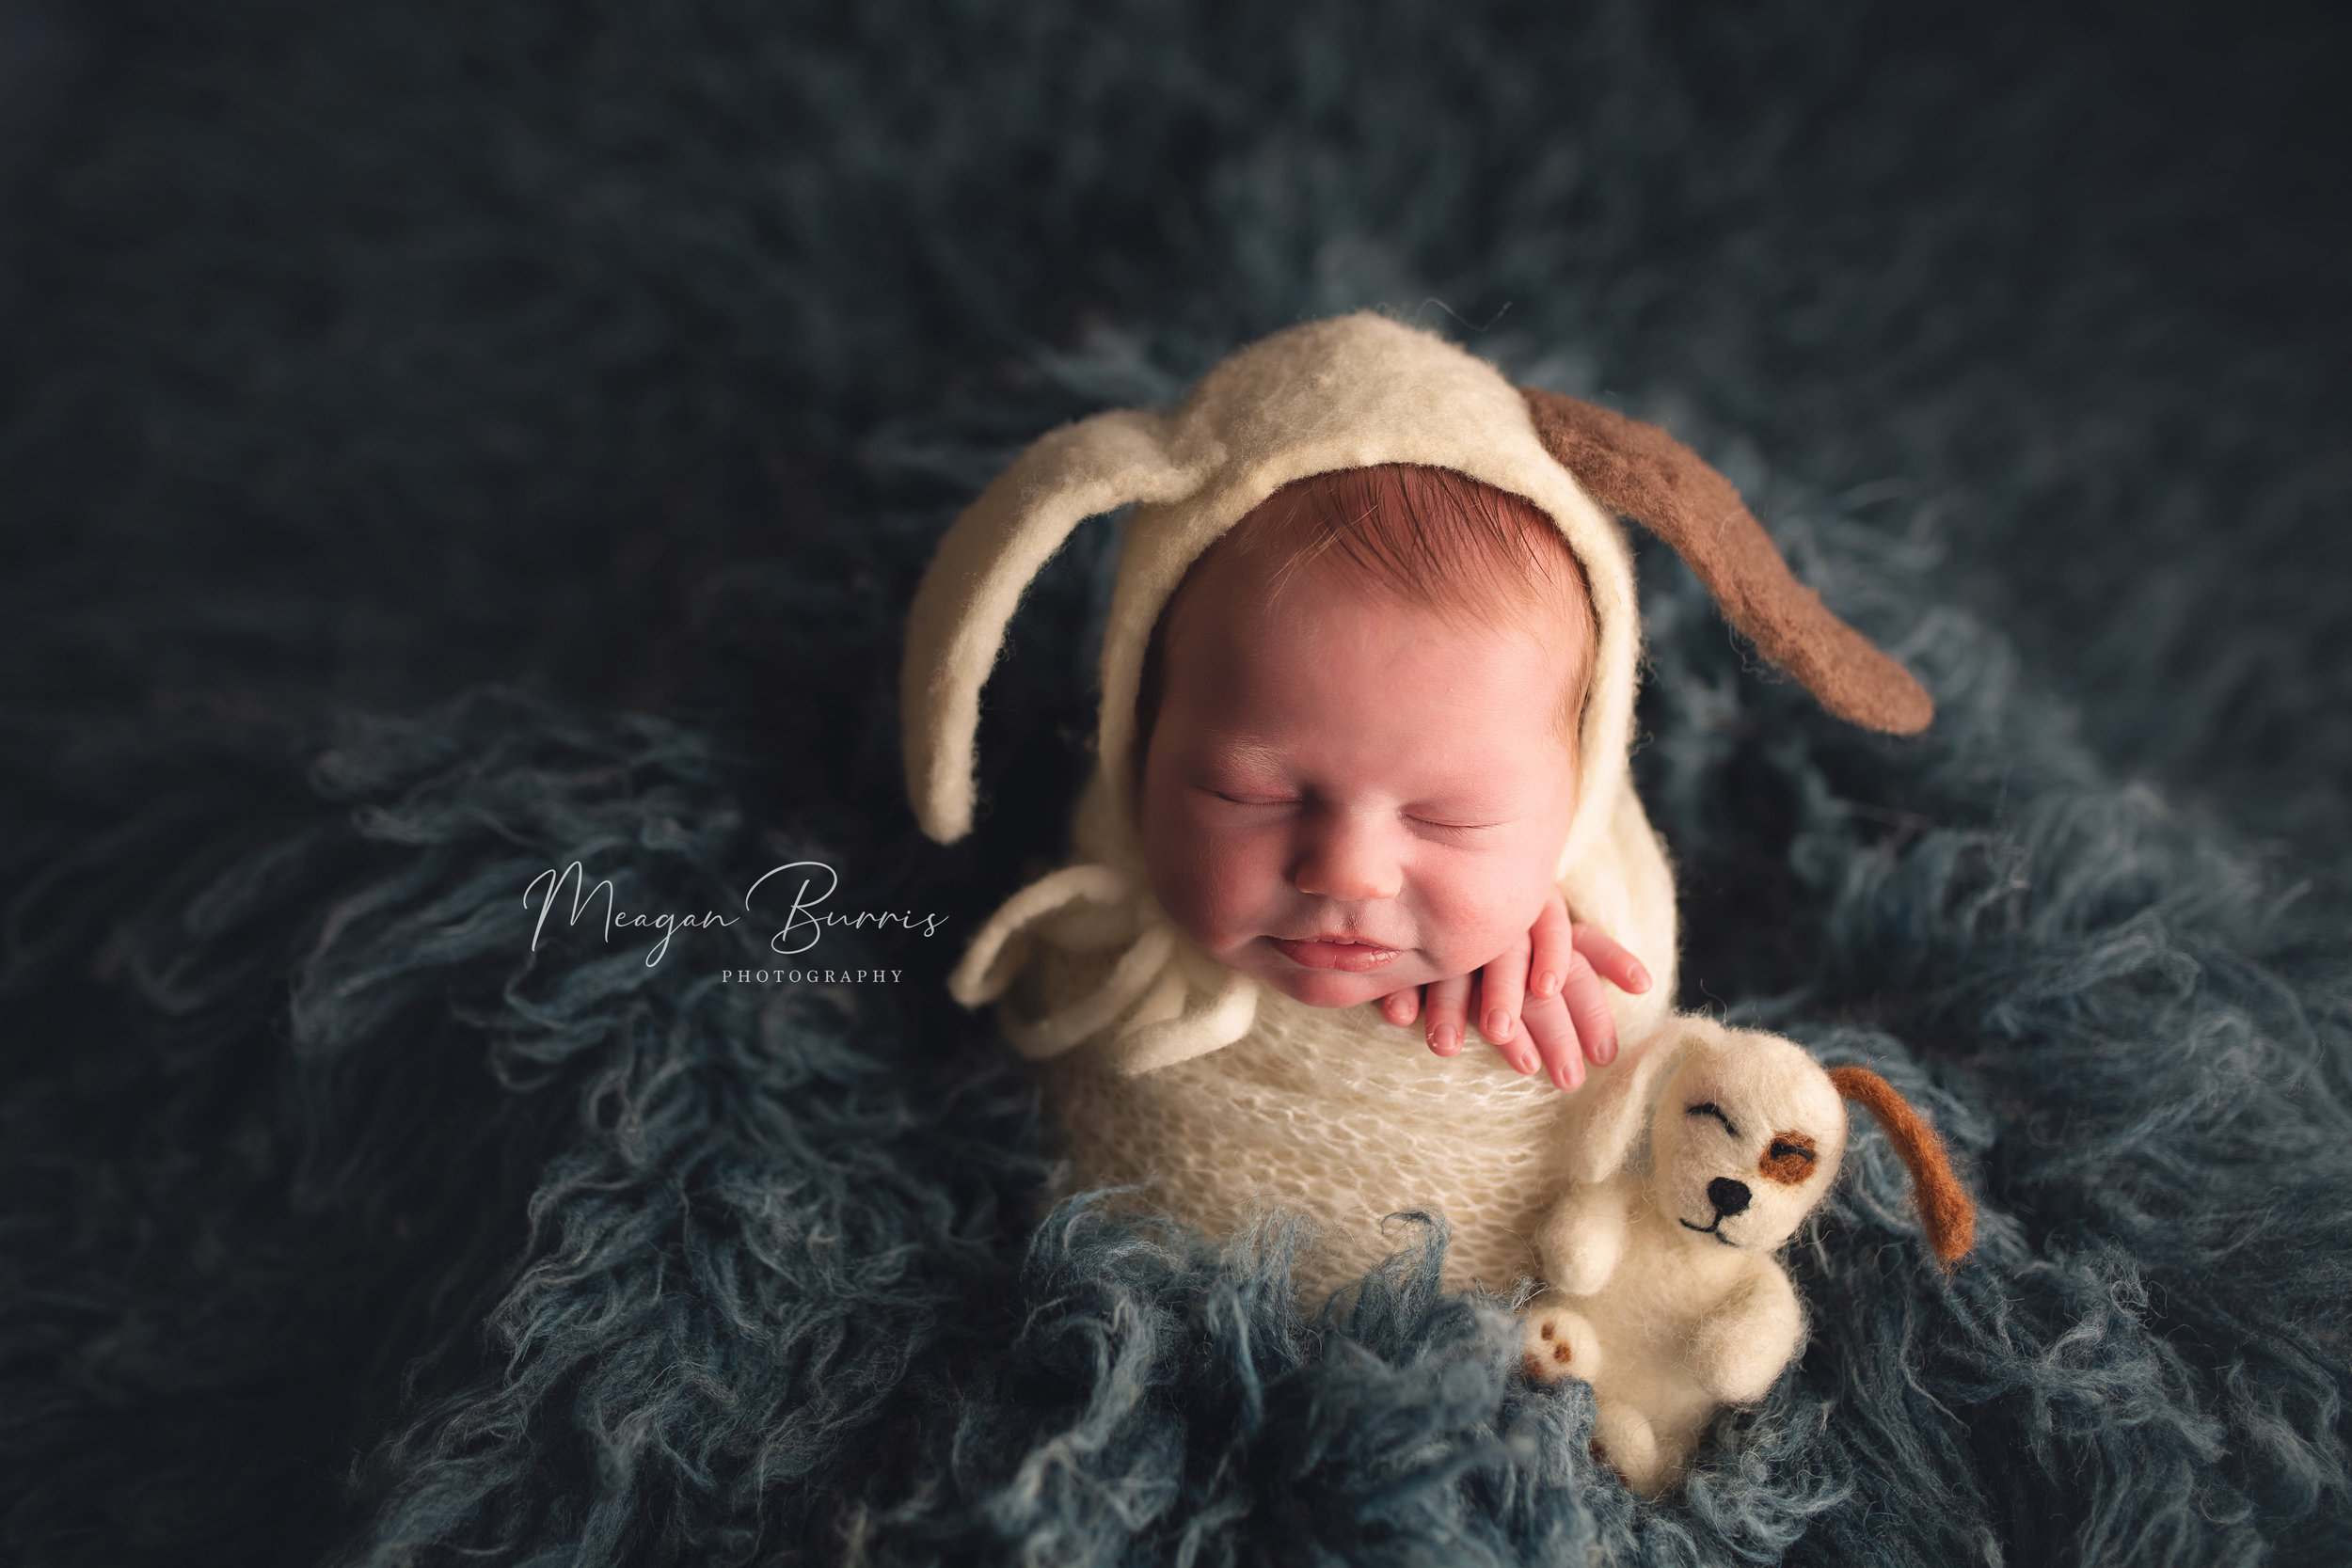 everett_fishers, in newborn photographer2.jpg